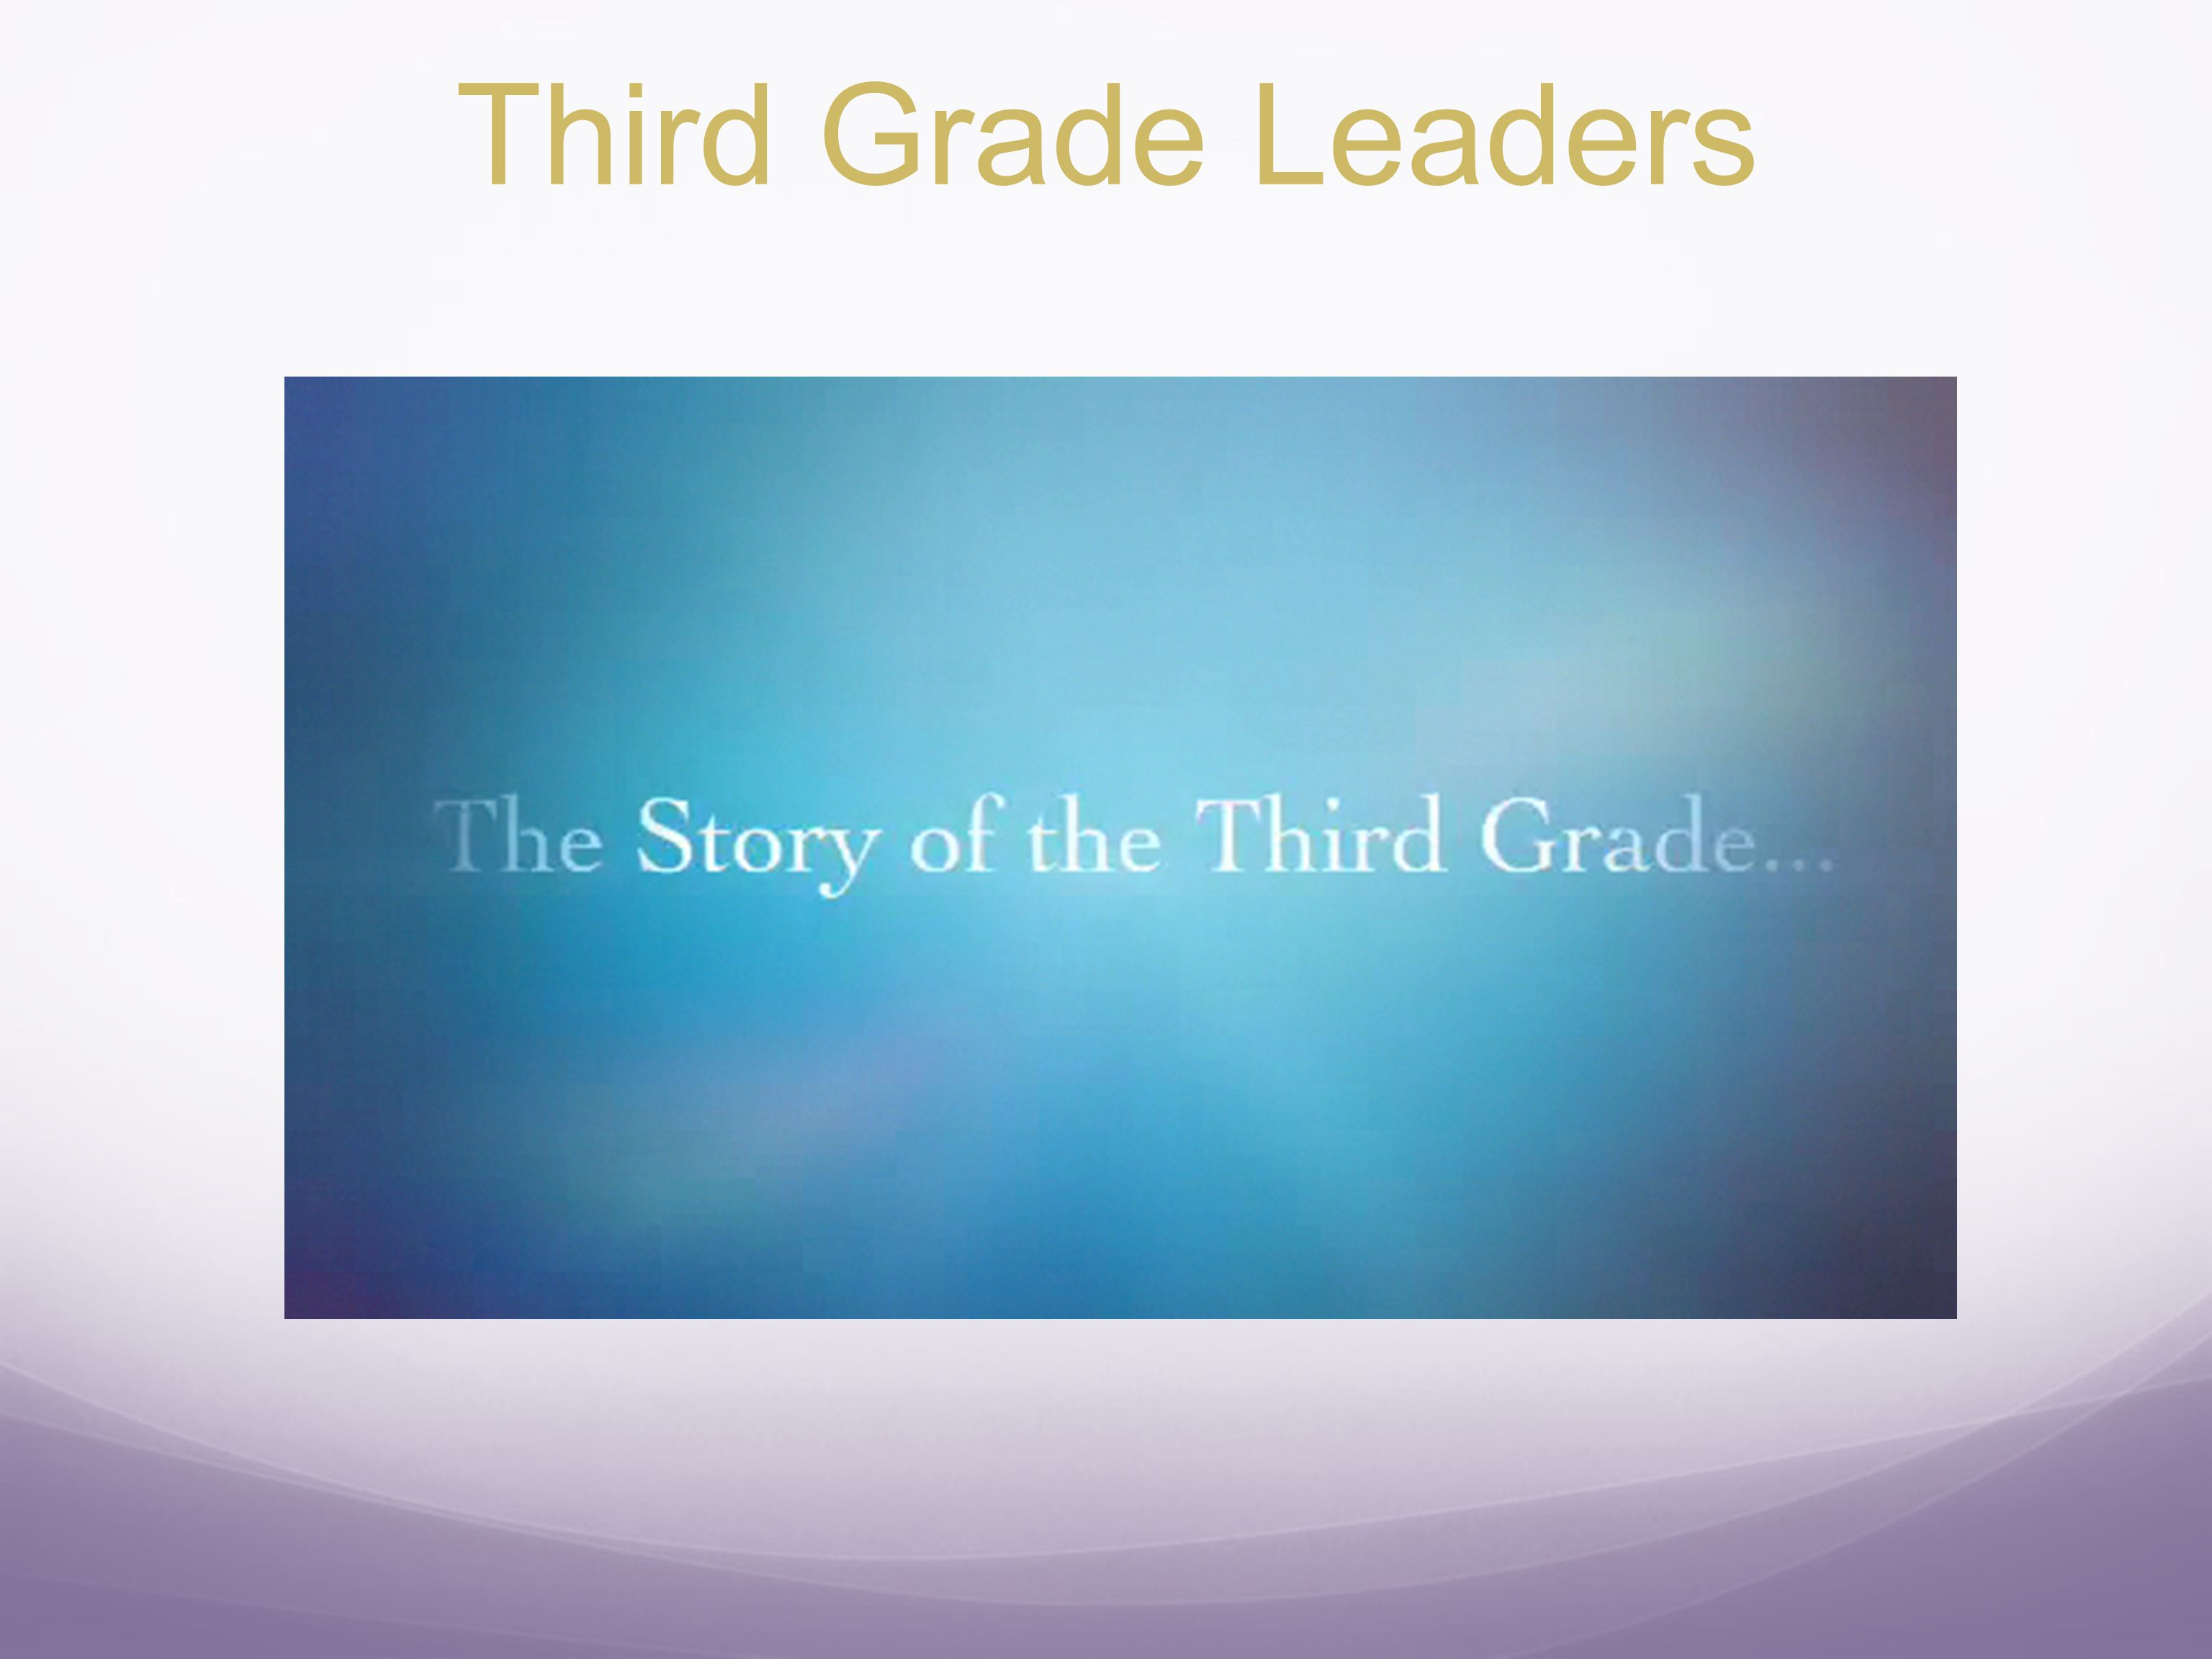 Third Grade Leaders